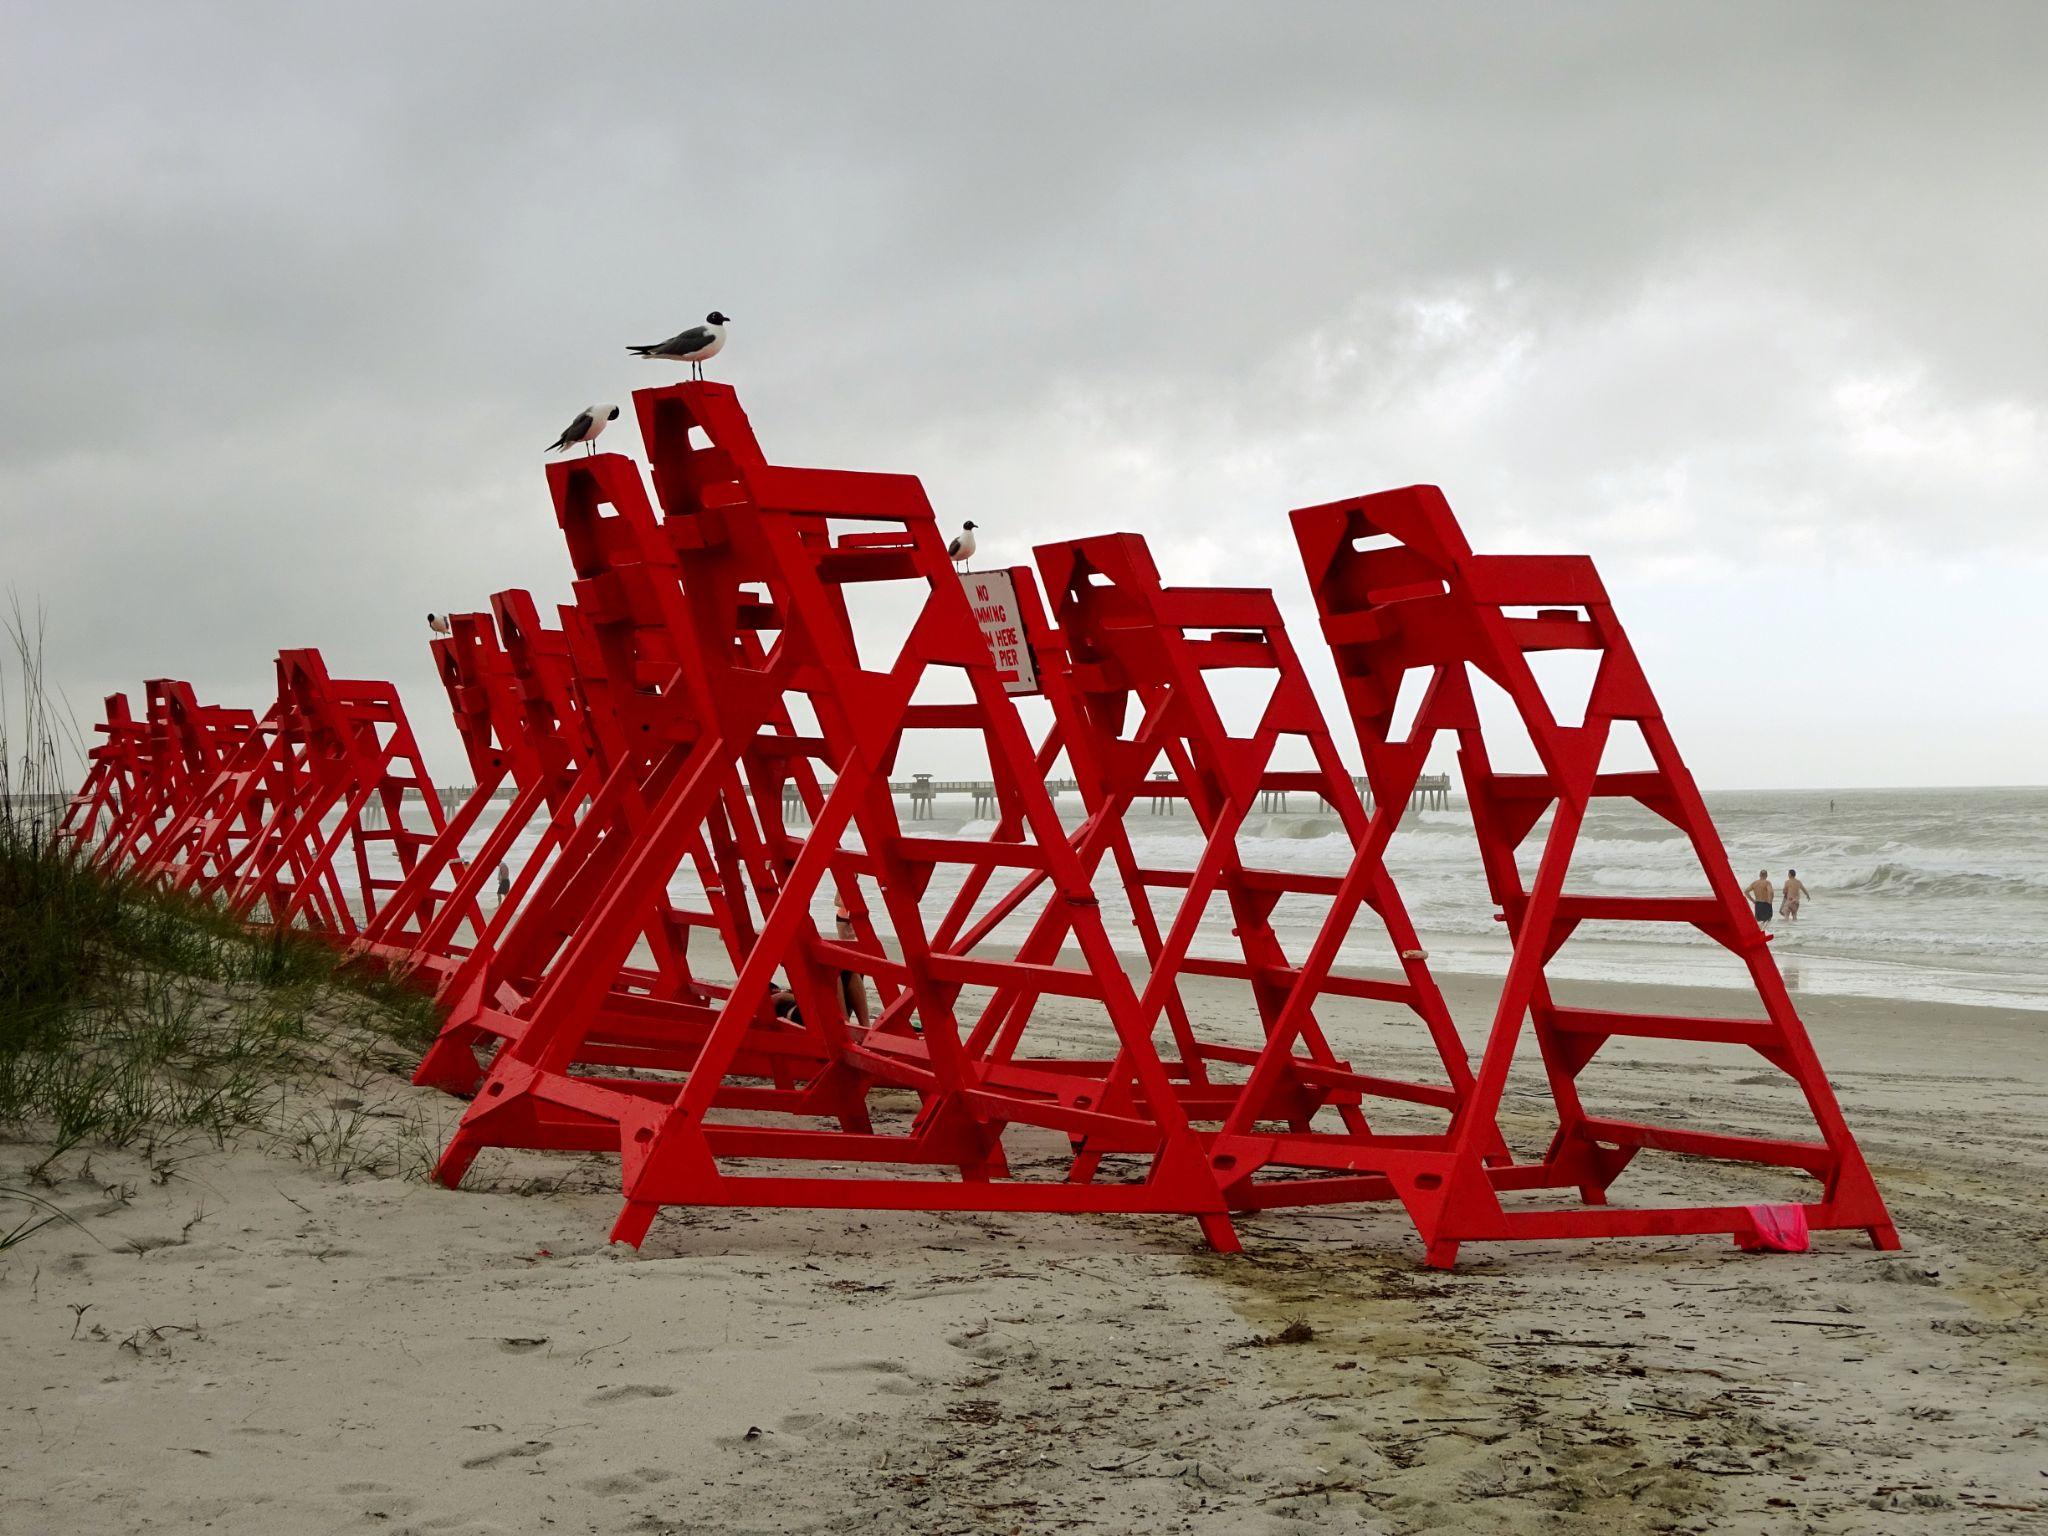 Lifeguard station by Judy Dean